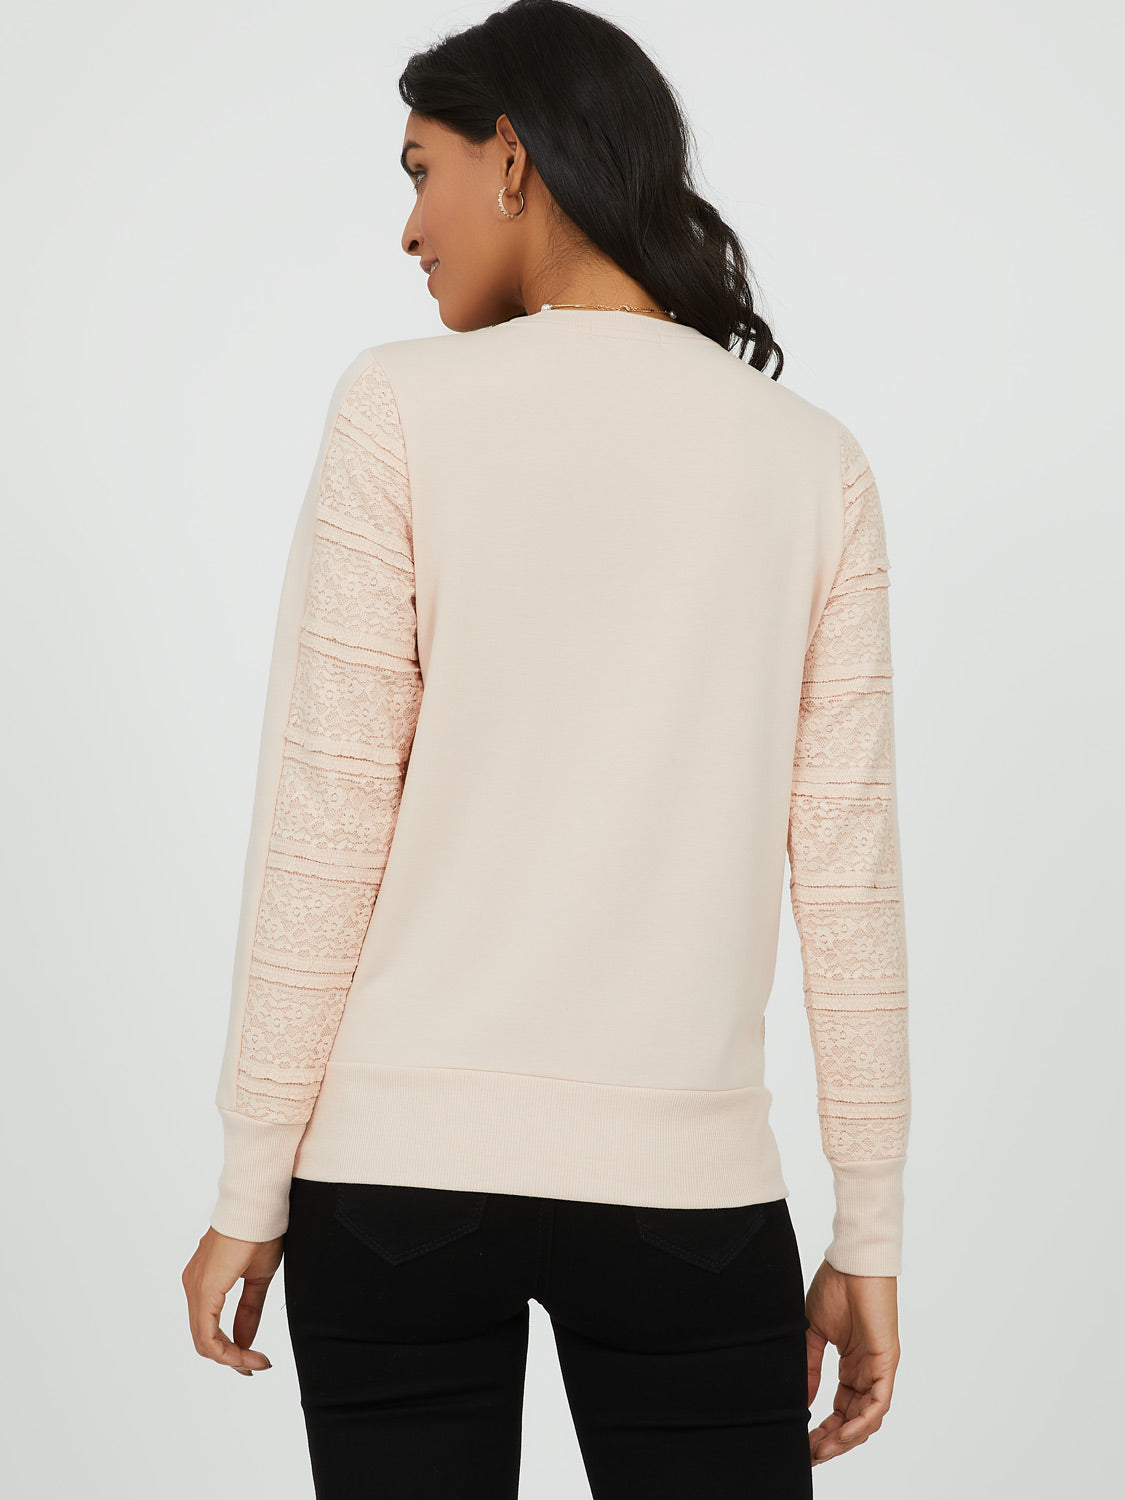 Lace Appliqué French Terry Sweatshirt